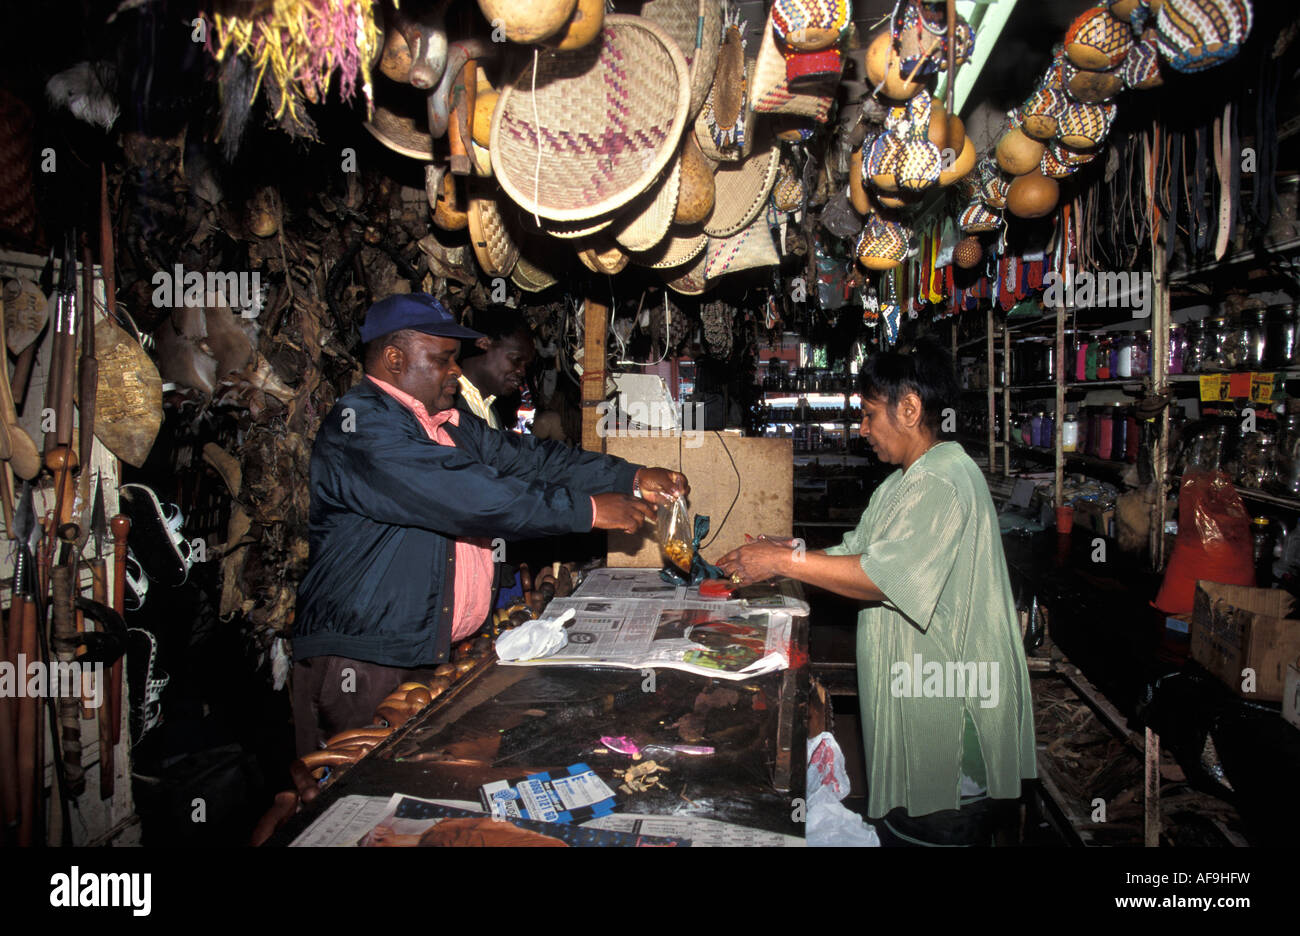 South Africa Johannesburg, Man and woman standing in Voodoo shop - Stock Image